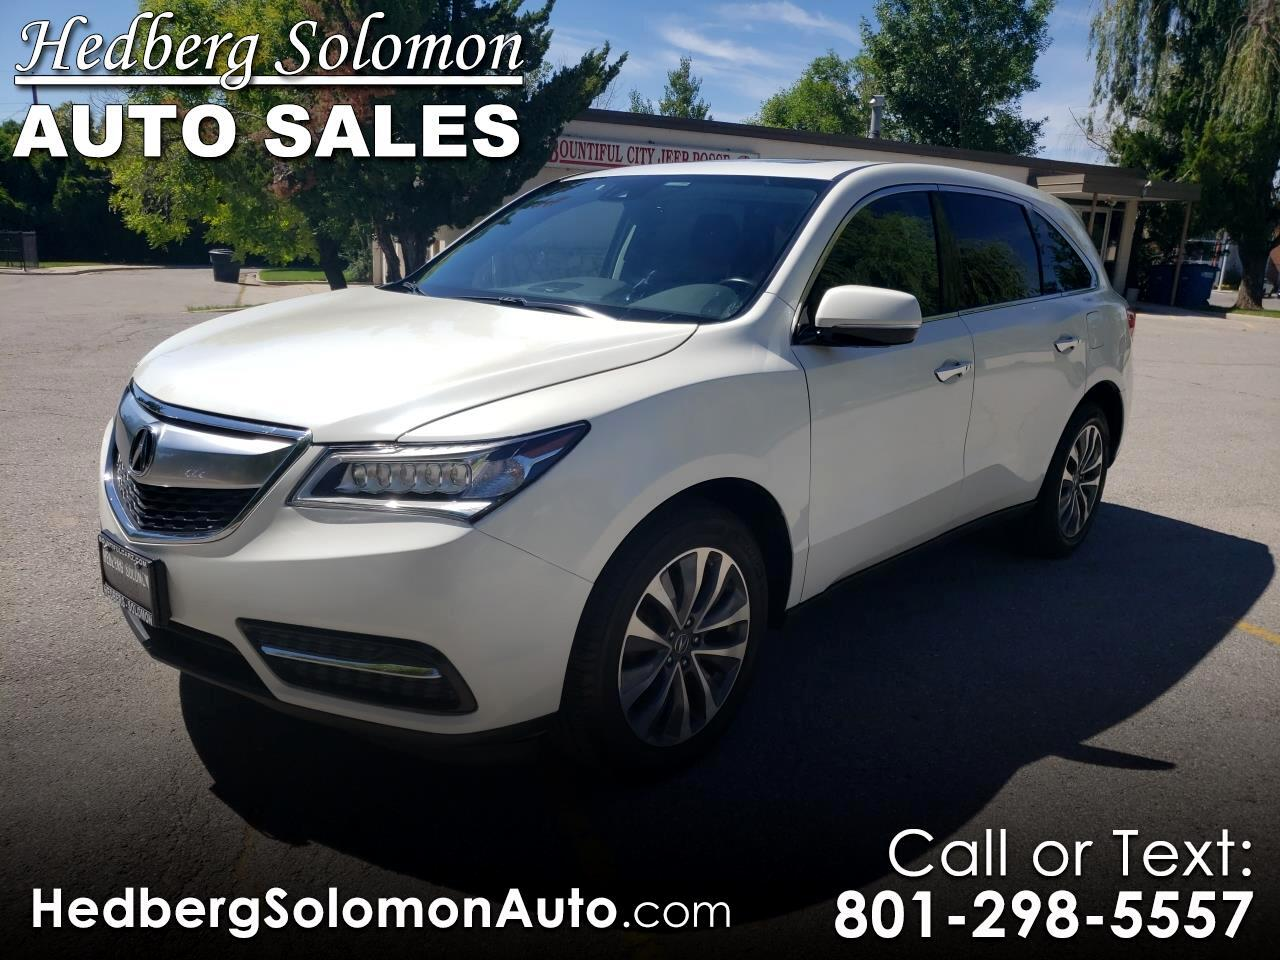 2016 Acura MDX SH-AWD 4dr w/Tech/Entertainment/AcuraWatch Plus